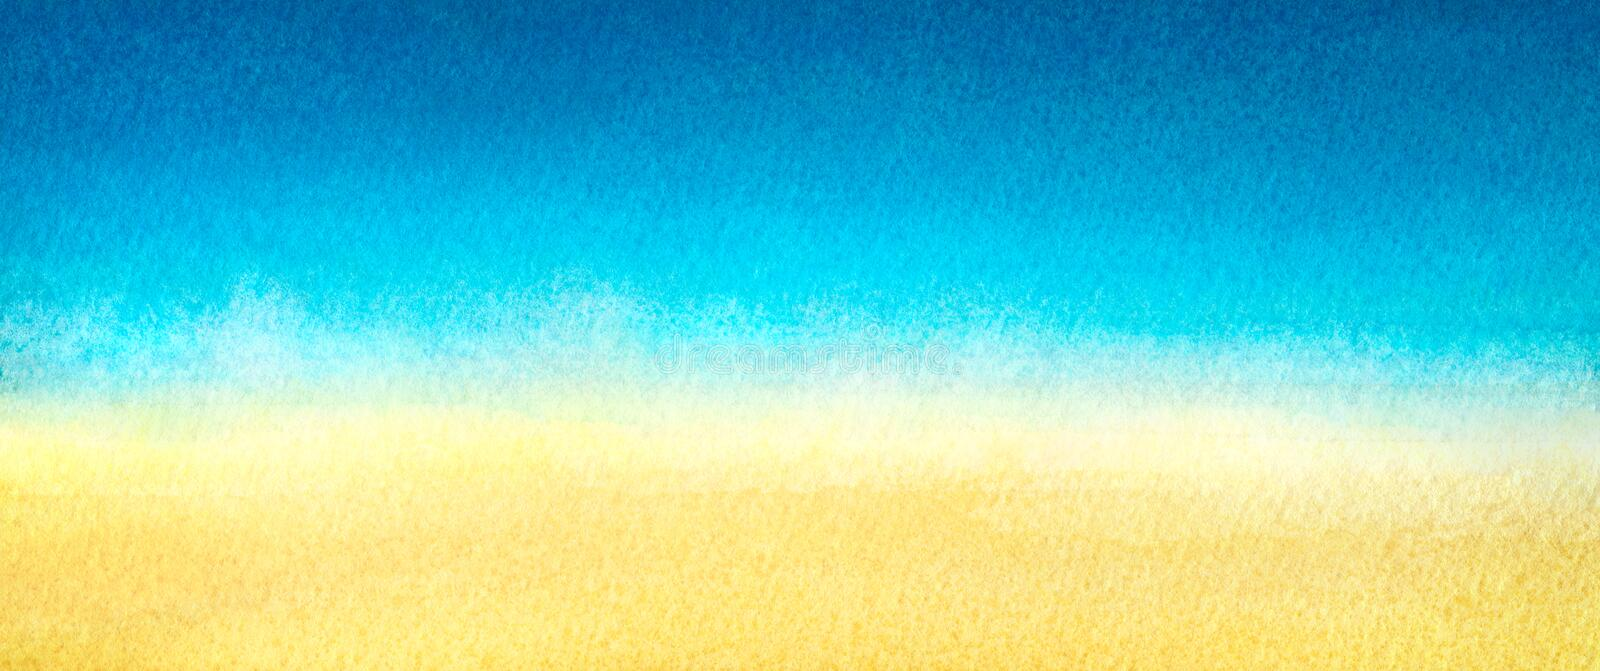 Web banner light blue to warm yellow abstract sea and beach gradient painted in watercolor on clean white background.  stock illustration